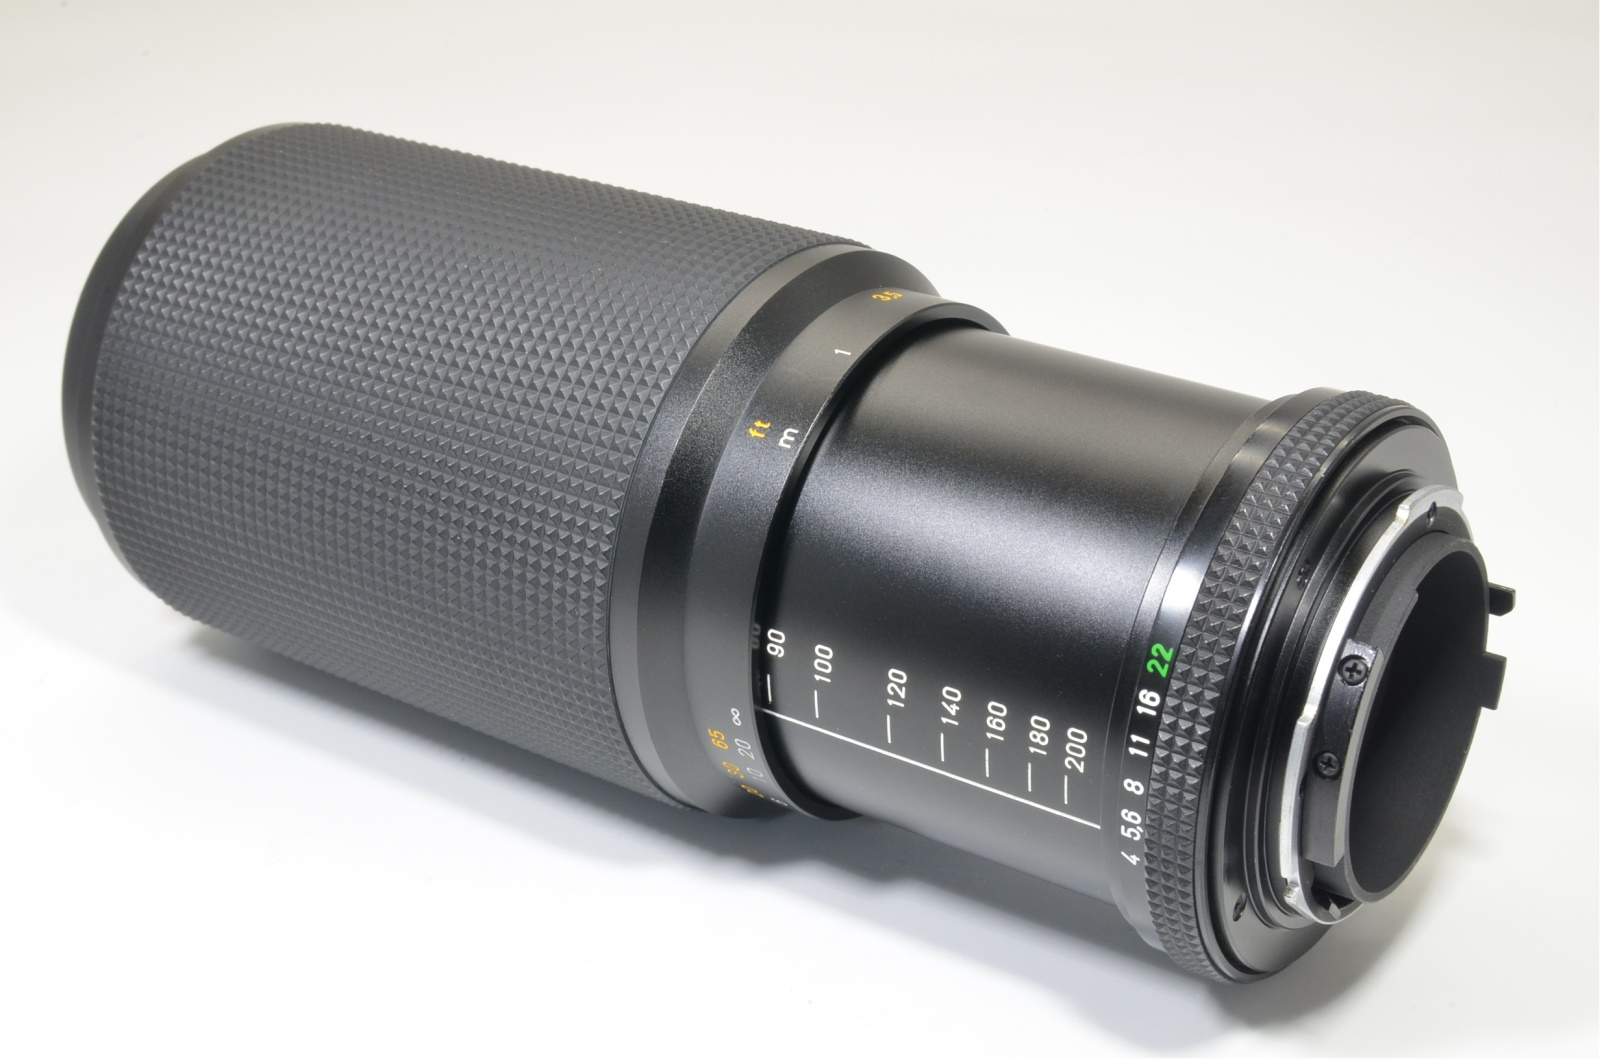 contax carl zeiss vario-sonnar t* 80-200mm f4 mmj made in japan